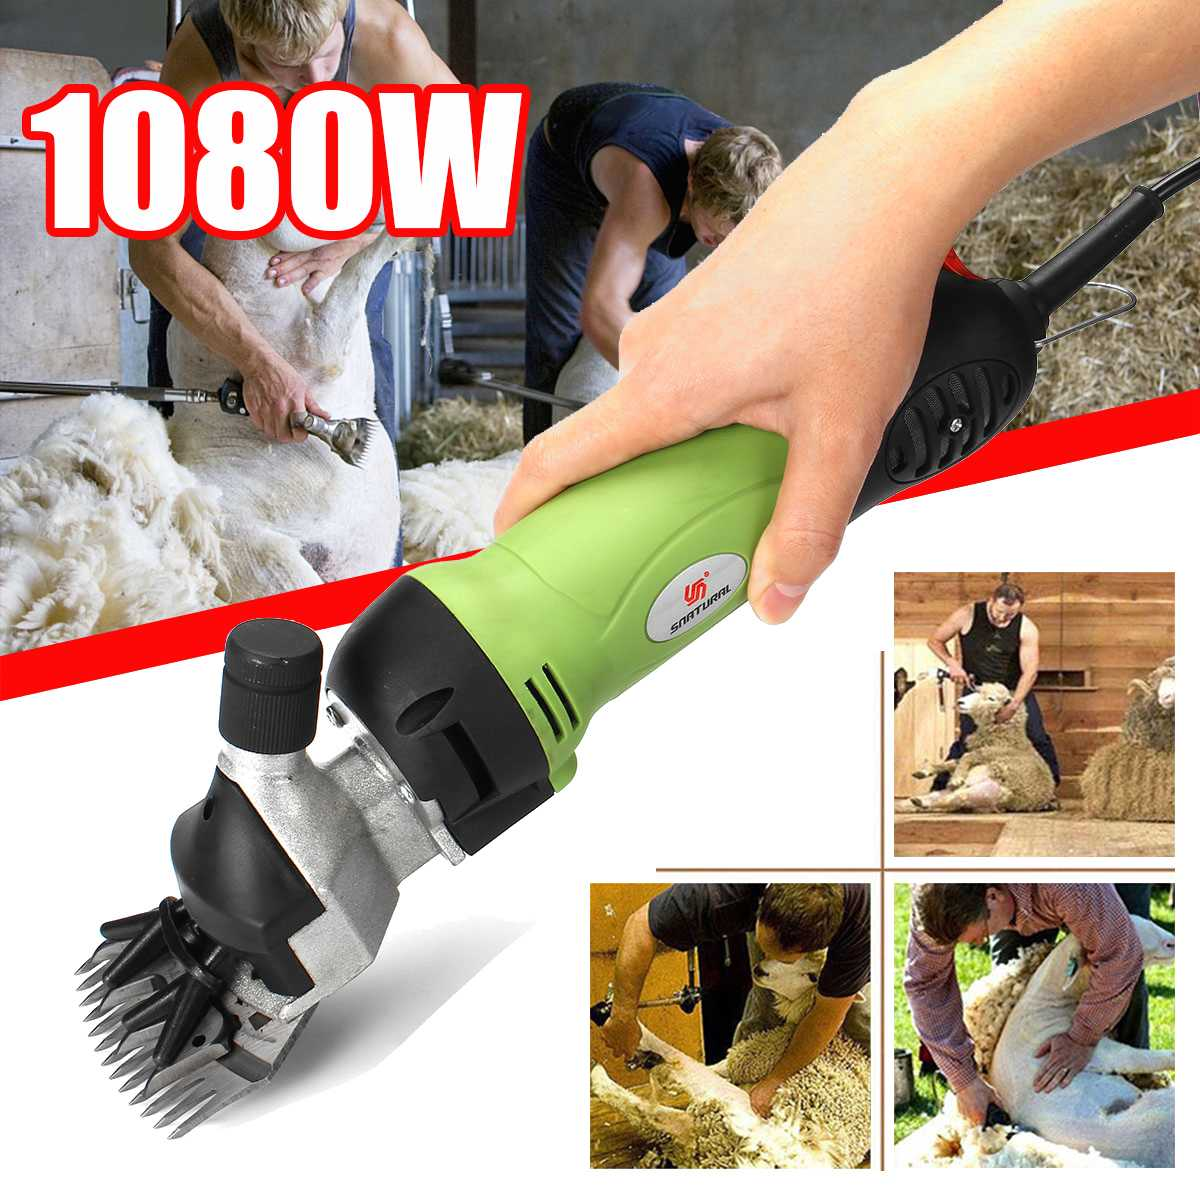 Sheep Shears Electric Clipper Goats Shearing Grooming Farm Supplies Livestock US